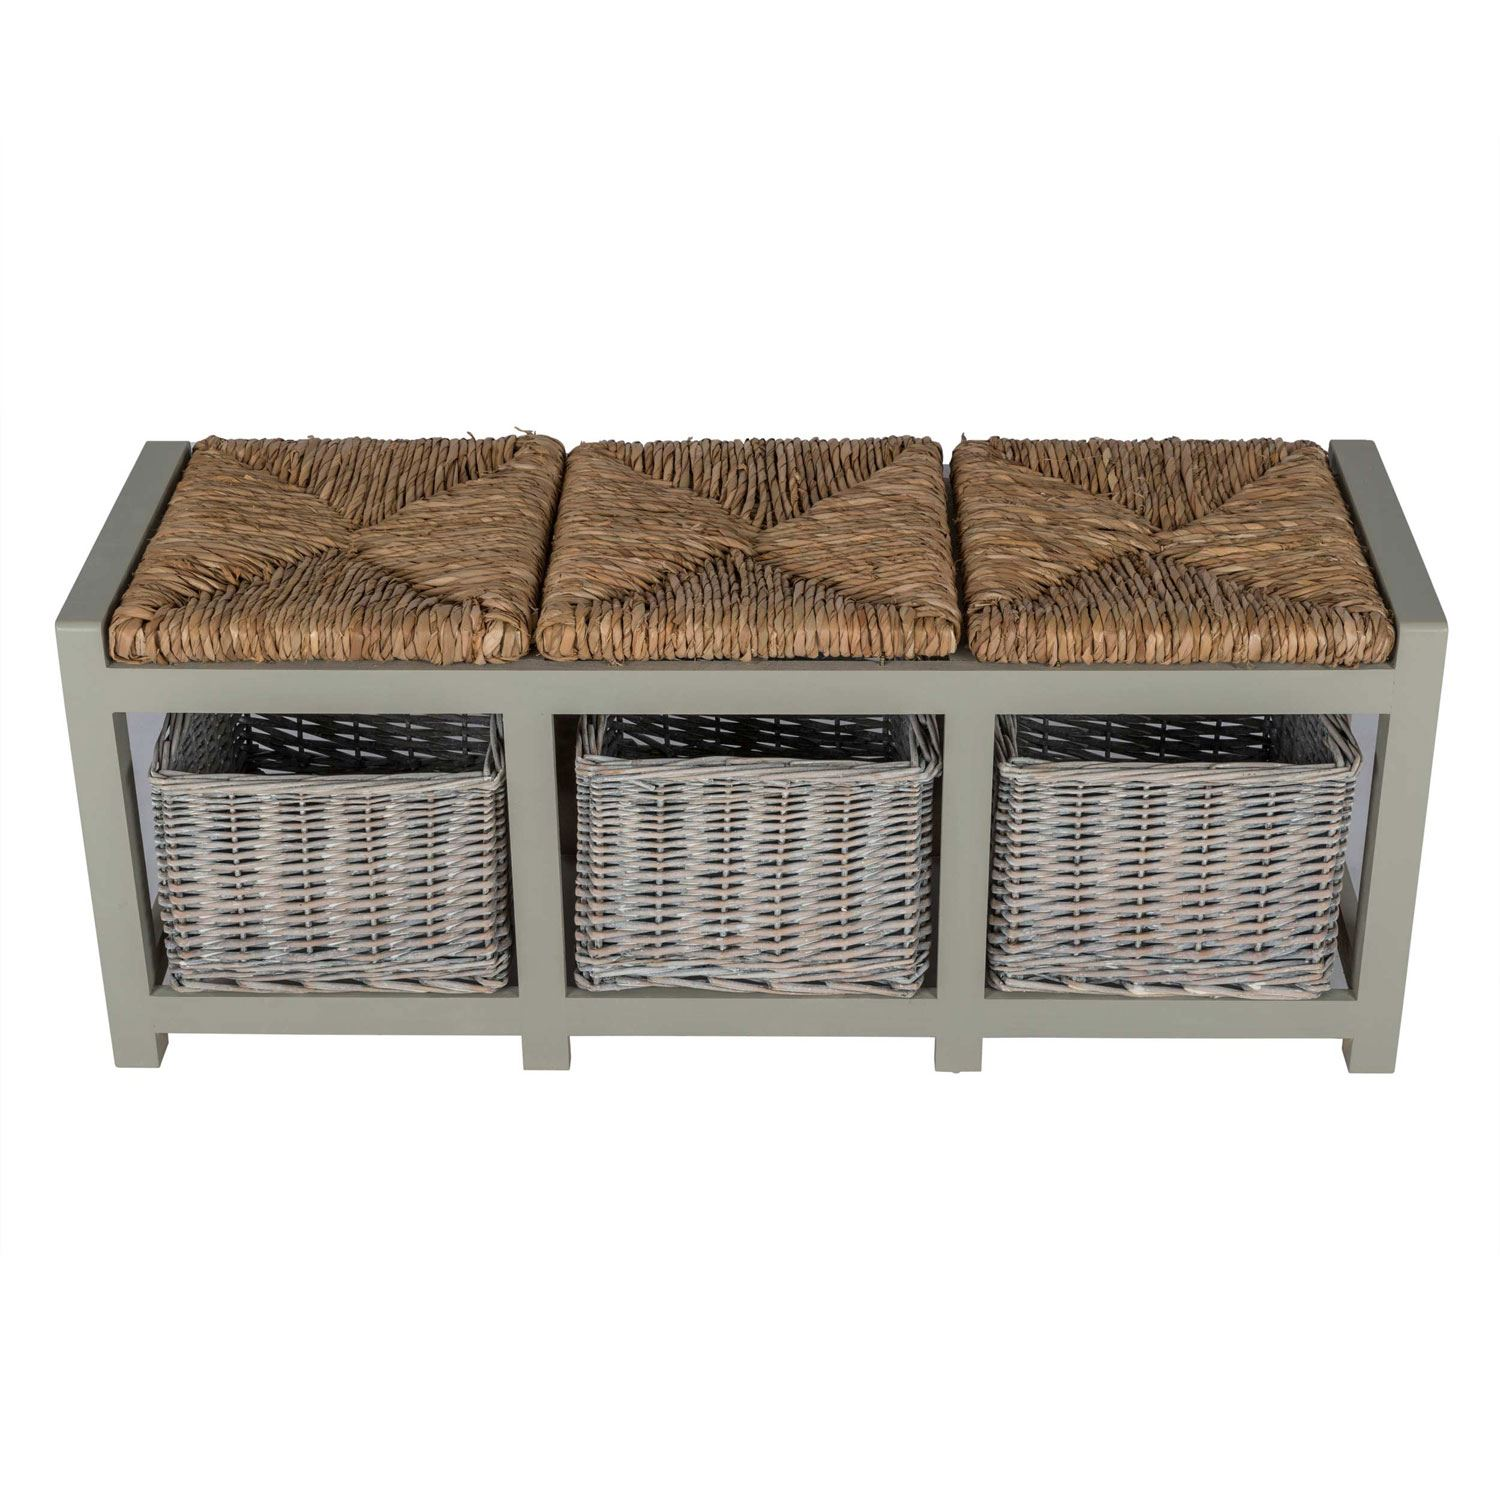 grey wooden bench with wicker baskets two three seater storage unit ebay. Black Bedroom Furniture Sets. Home Design Ideas